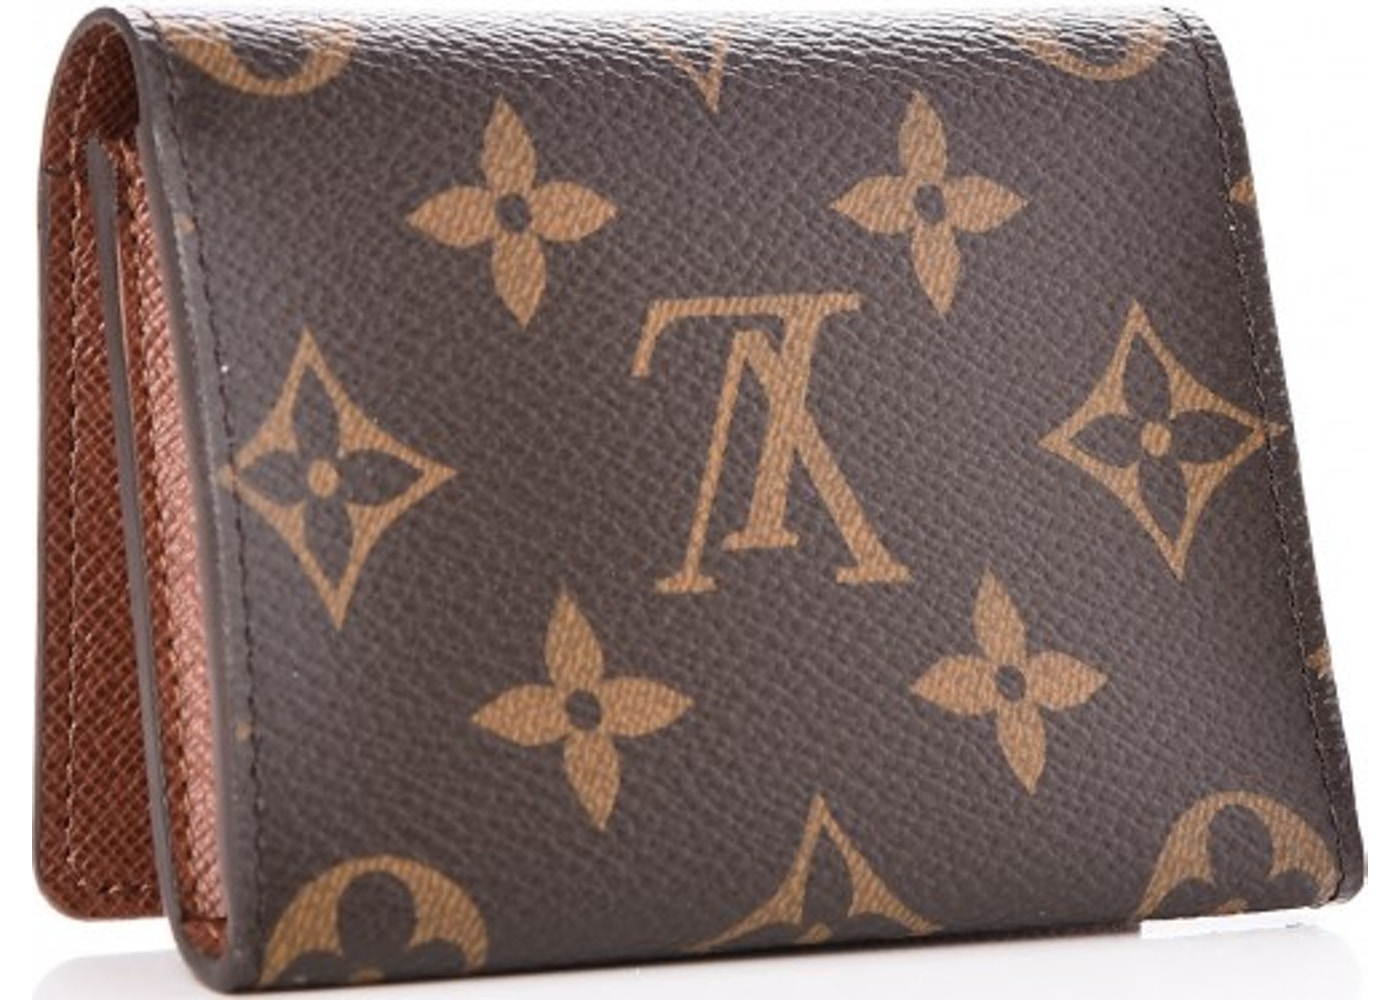 Sell Or Ask View All Bids Louis Vuitton Card Holder Envelope Carte De Visite Monogram Brown